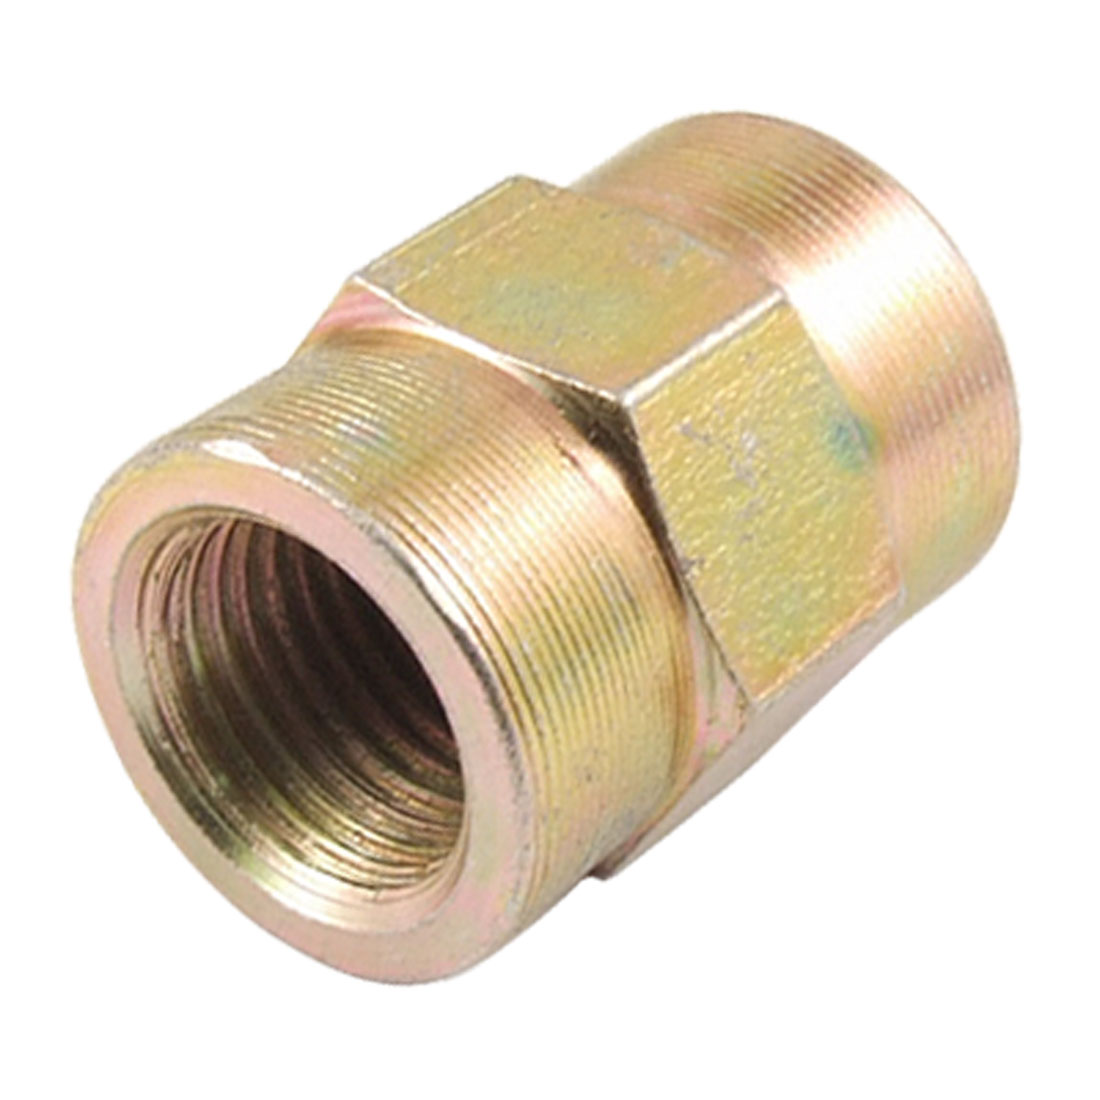 """15/32"""" x 15/32"""" Female Thread Oil Pressure Adapter Hex Pipe Coupling"""